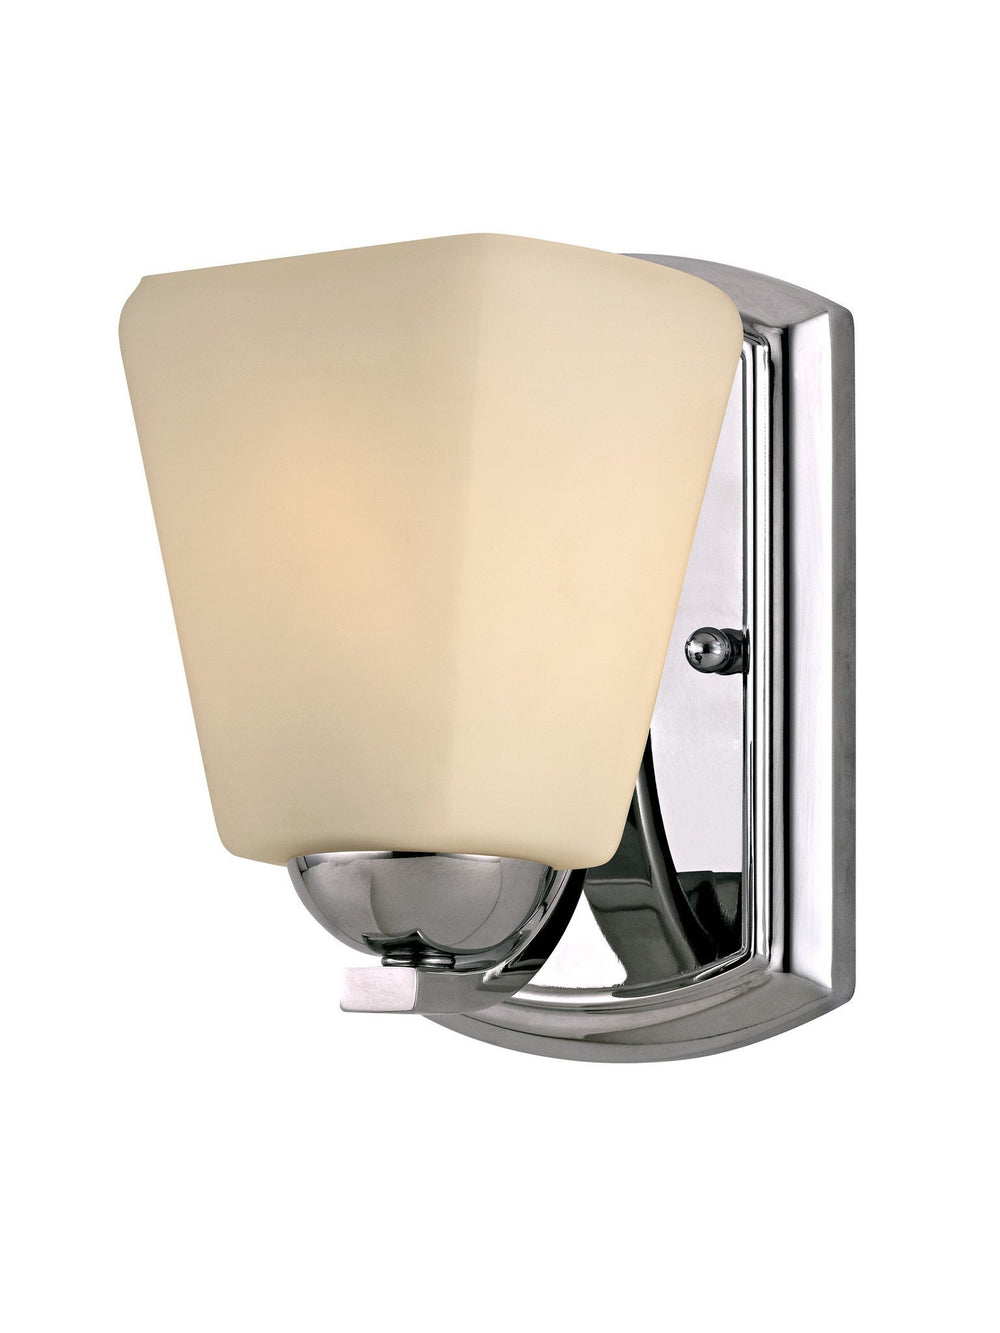 3371-26 Dolan Designs Hammond Wall Sconce Chrome